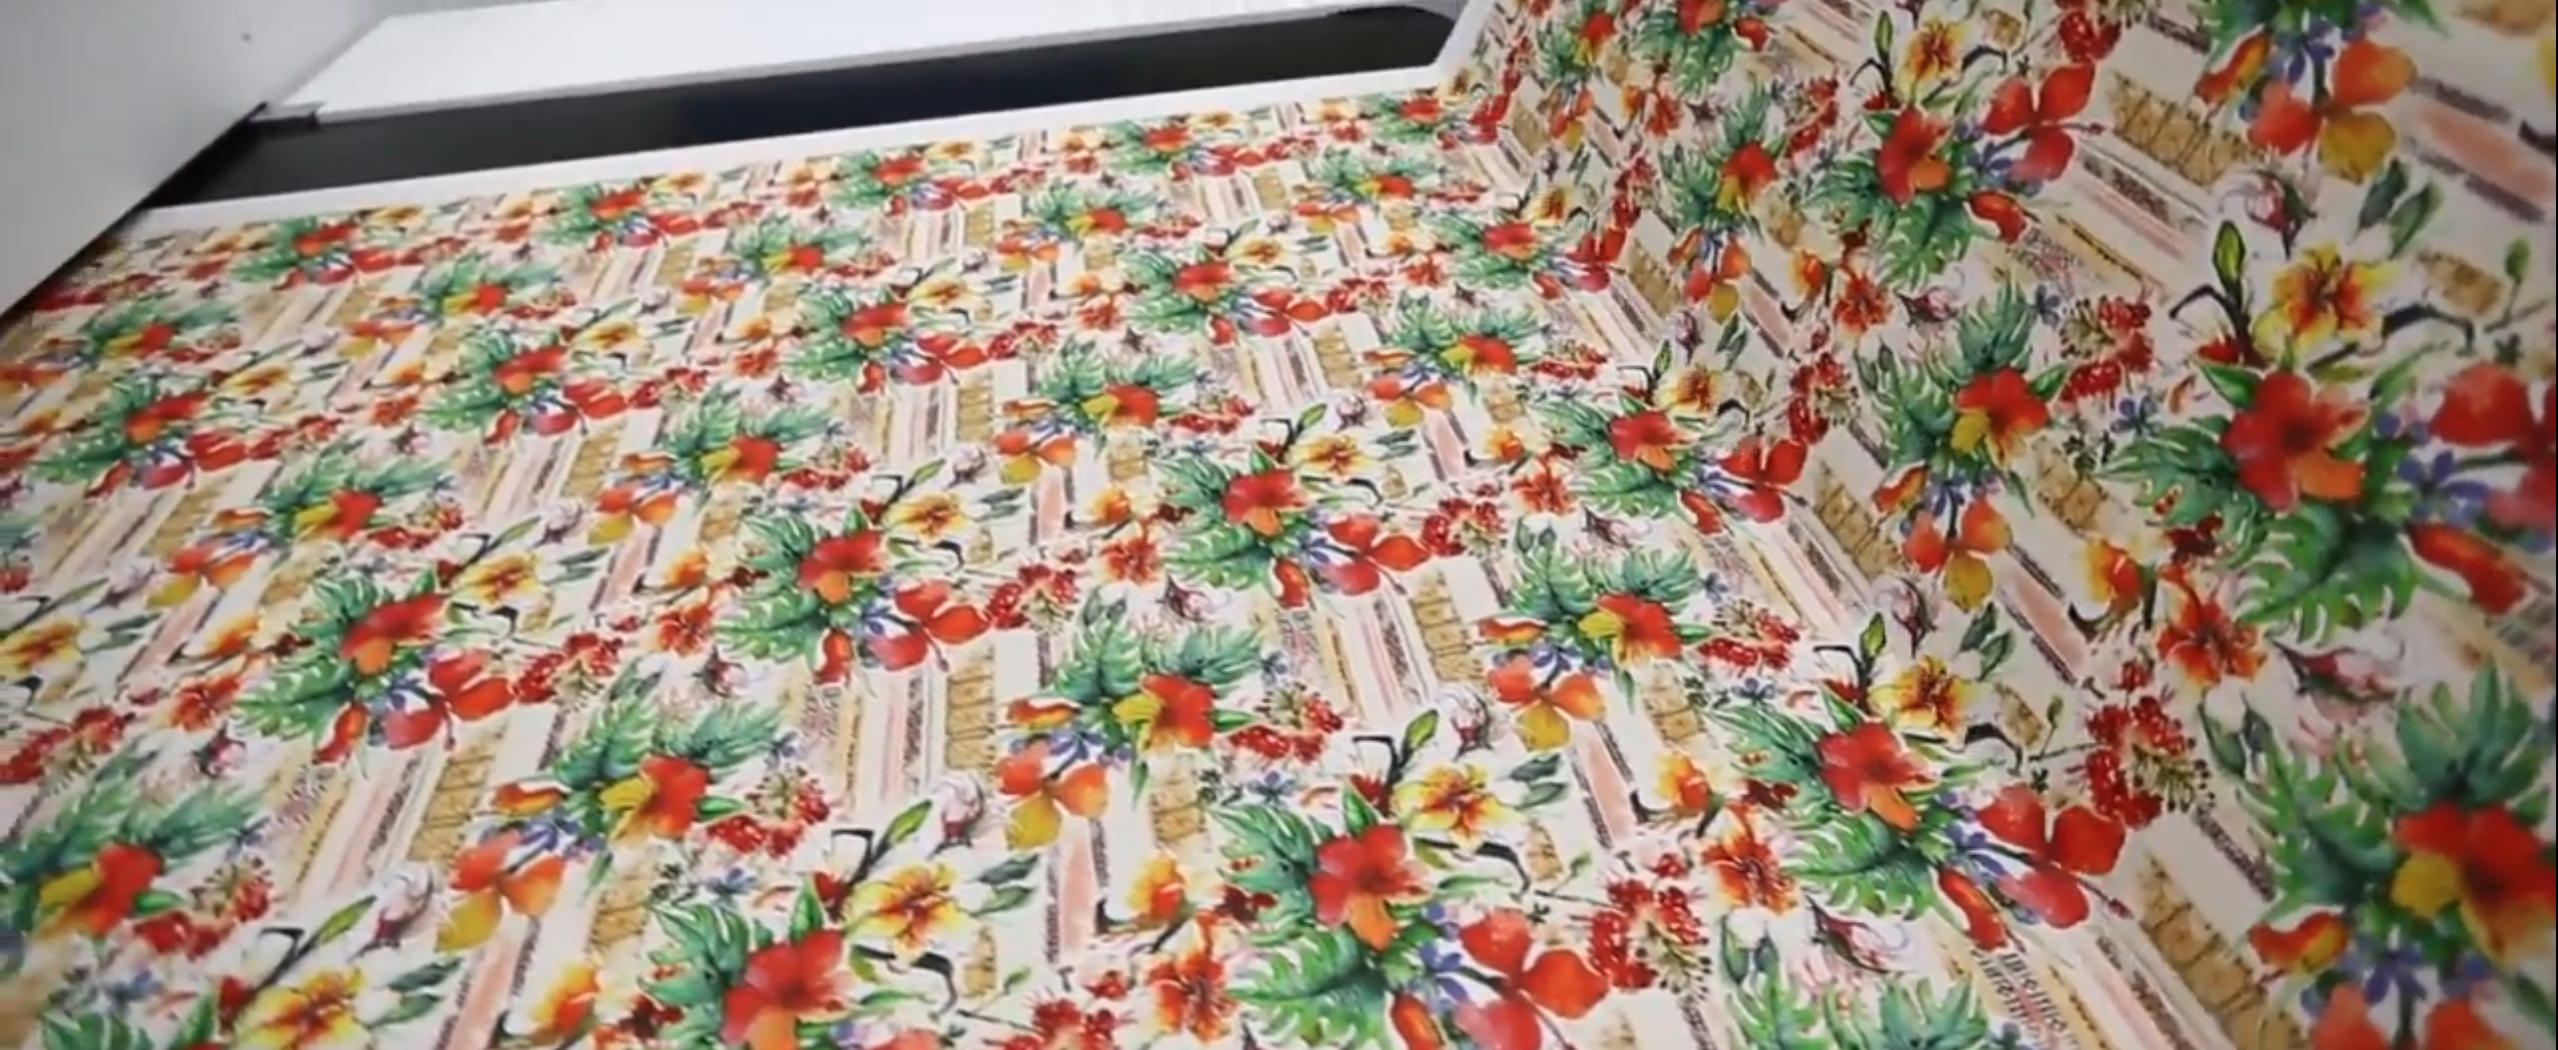 what are requirements for digital textile printing?